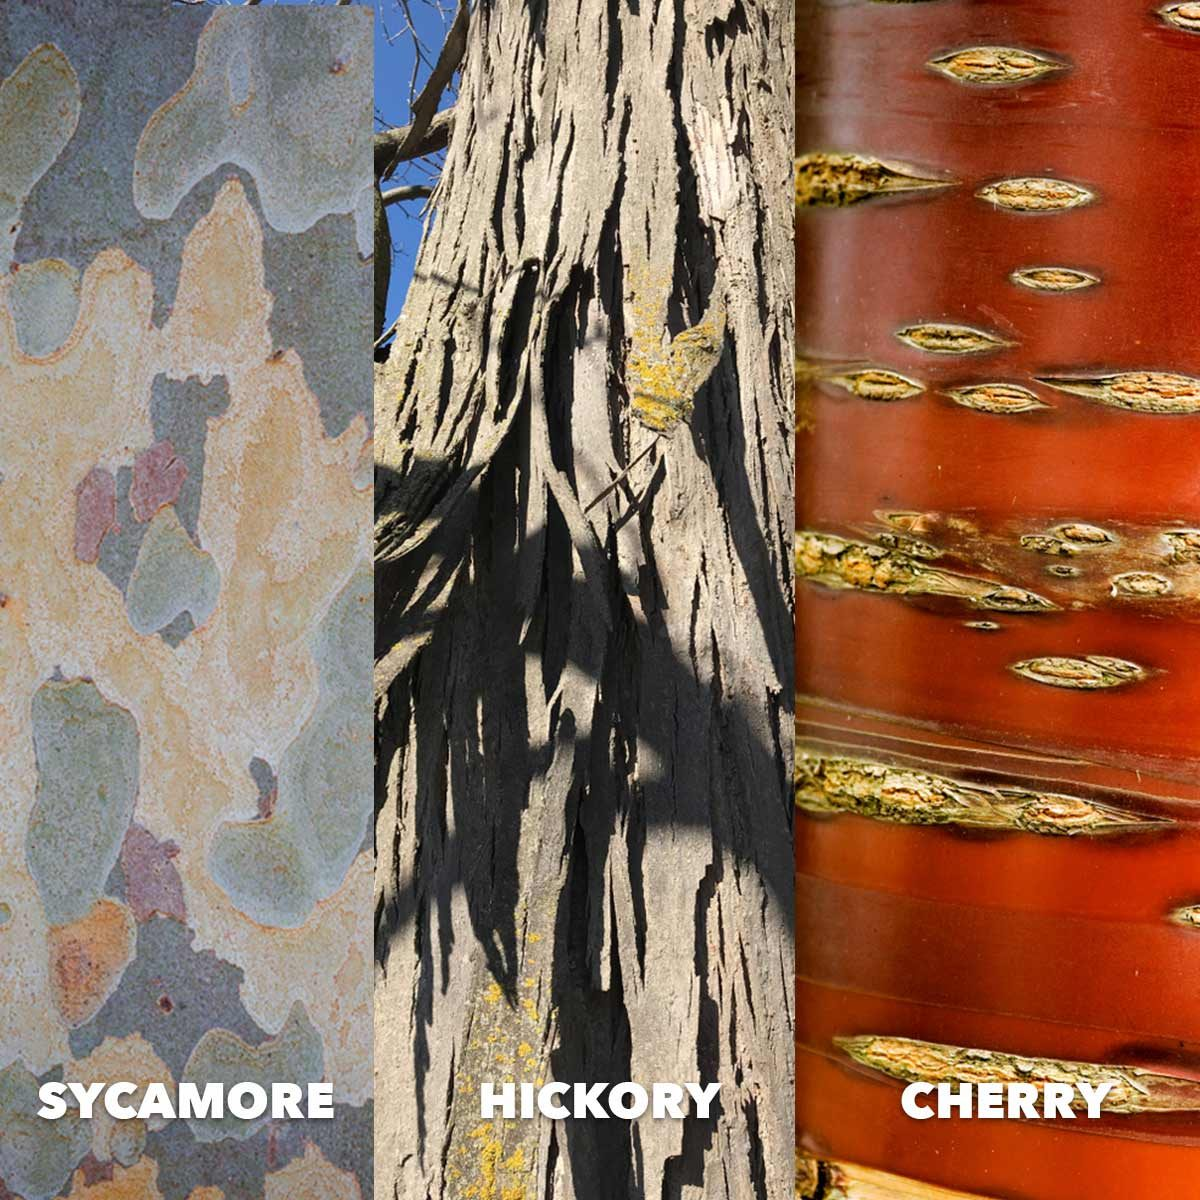 Sycamore hickory cherry bark comparison